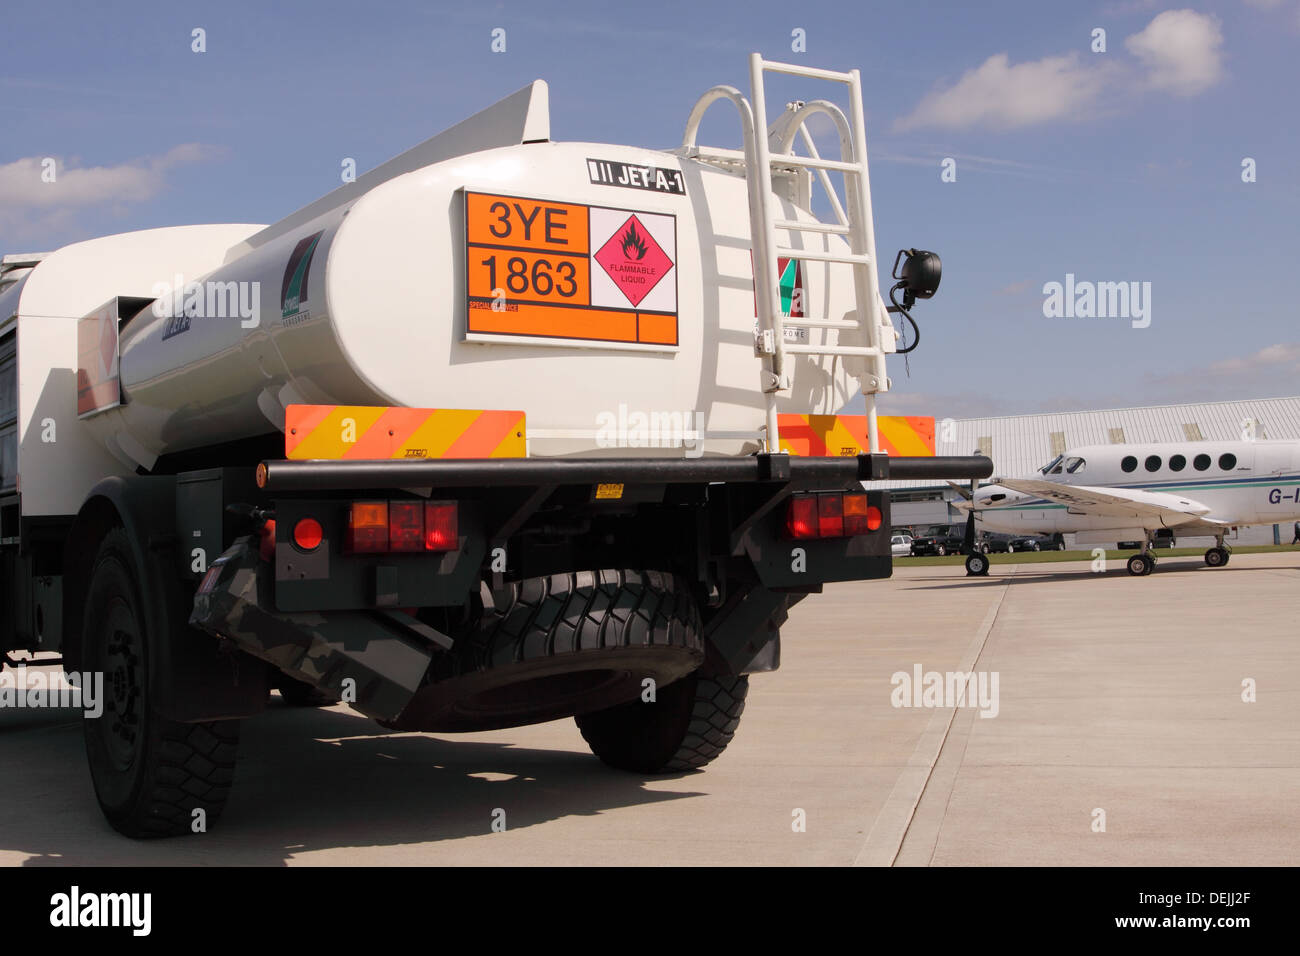 Jet A Fuel Filter Truck Wiring Library Aviation Filters Airport With A1 Aero And Hazchem Sign At In Uk